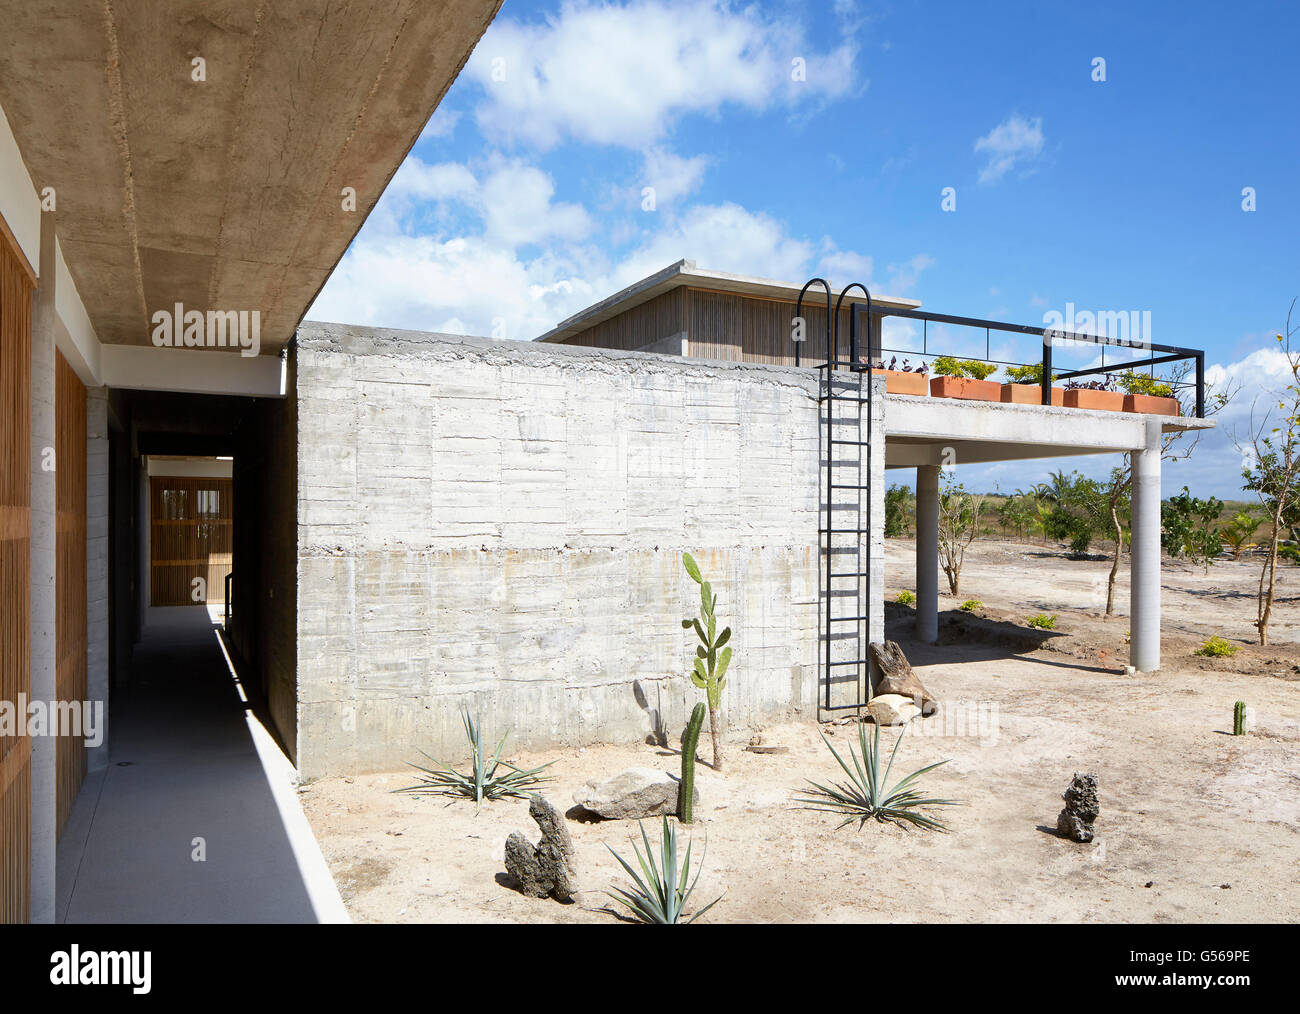 Overall view from lower level. Casa Cal, Puerto Escondido, Mexico. Architect: BAAQ, 2015. - Stock Image